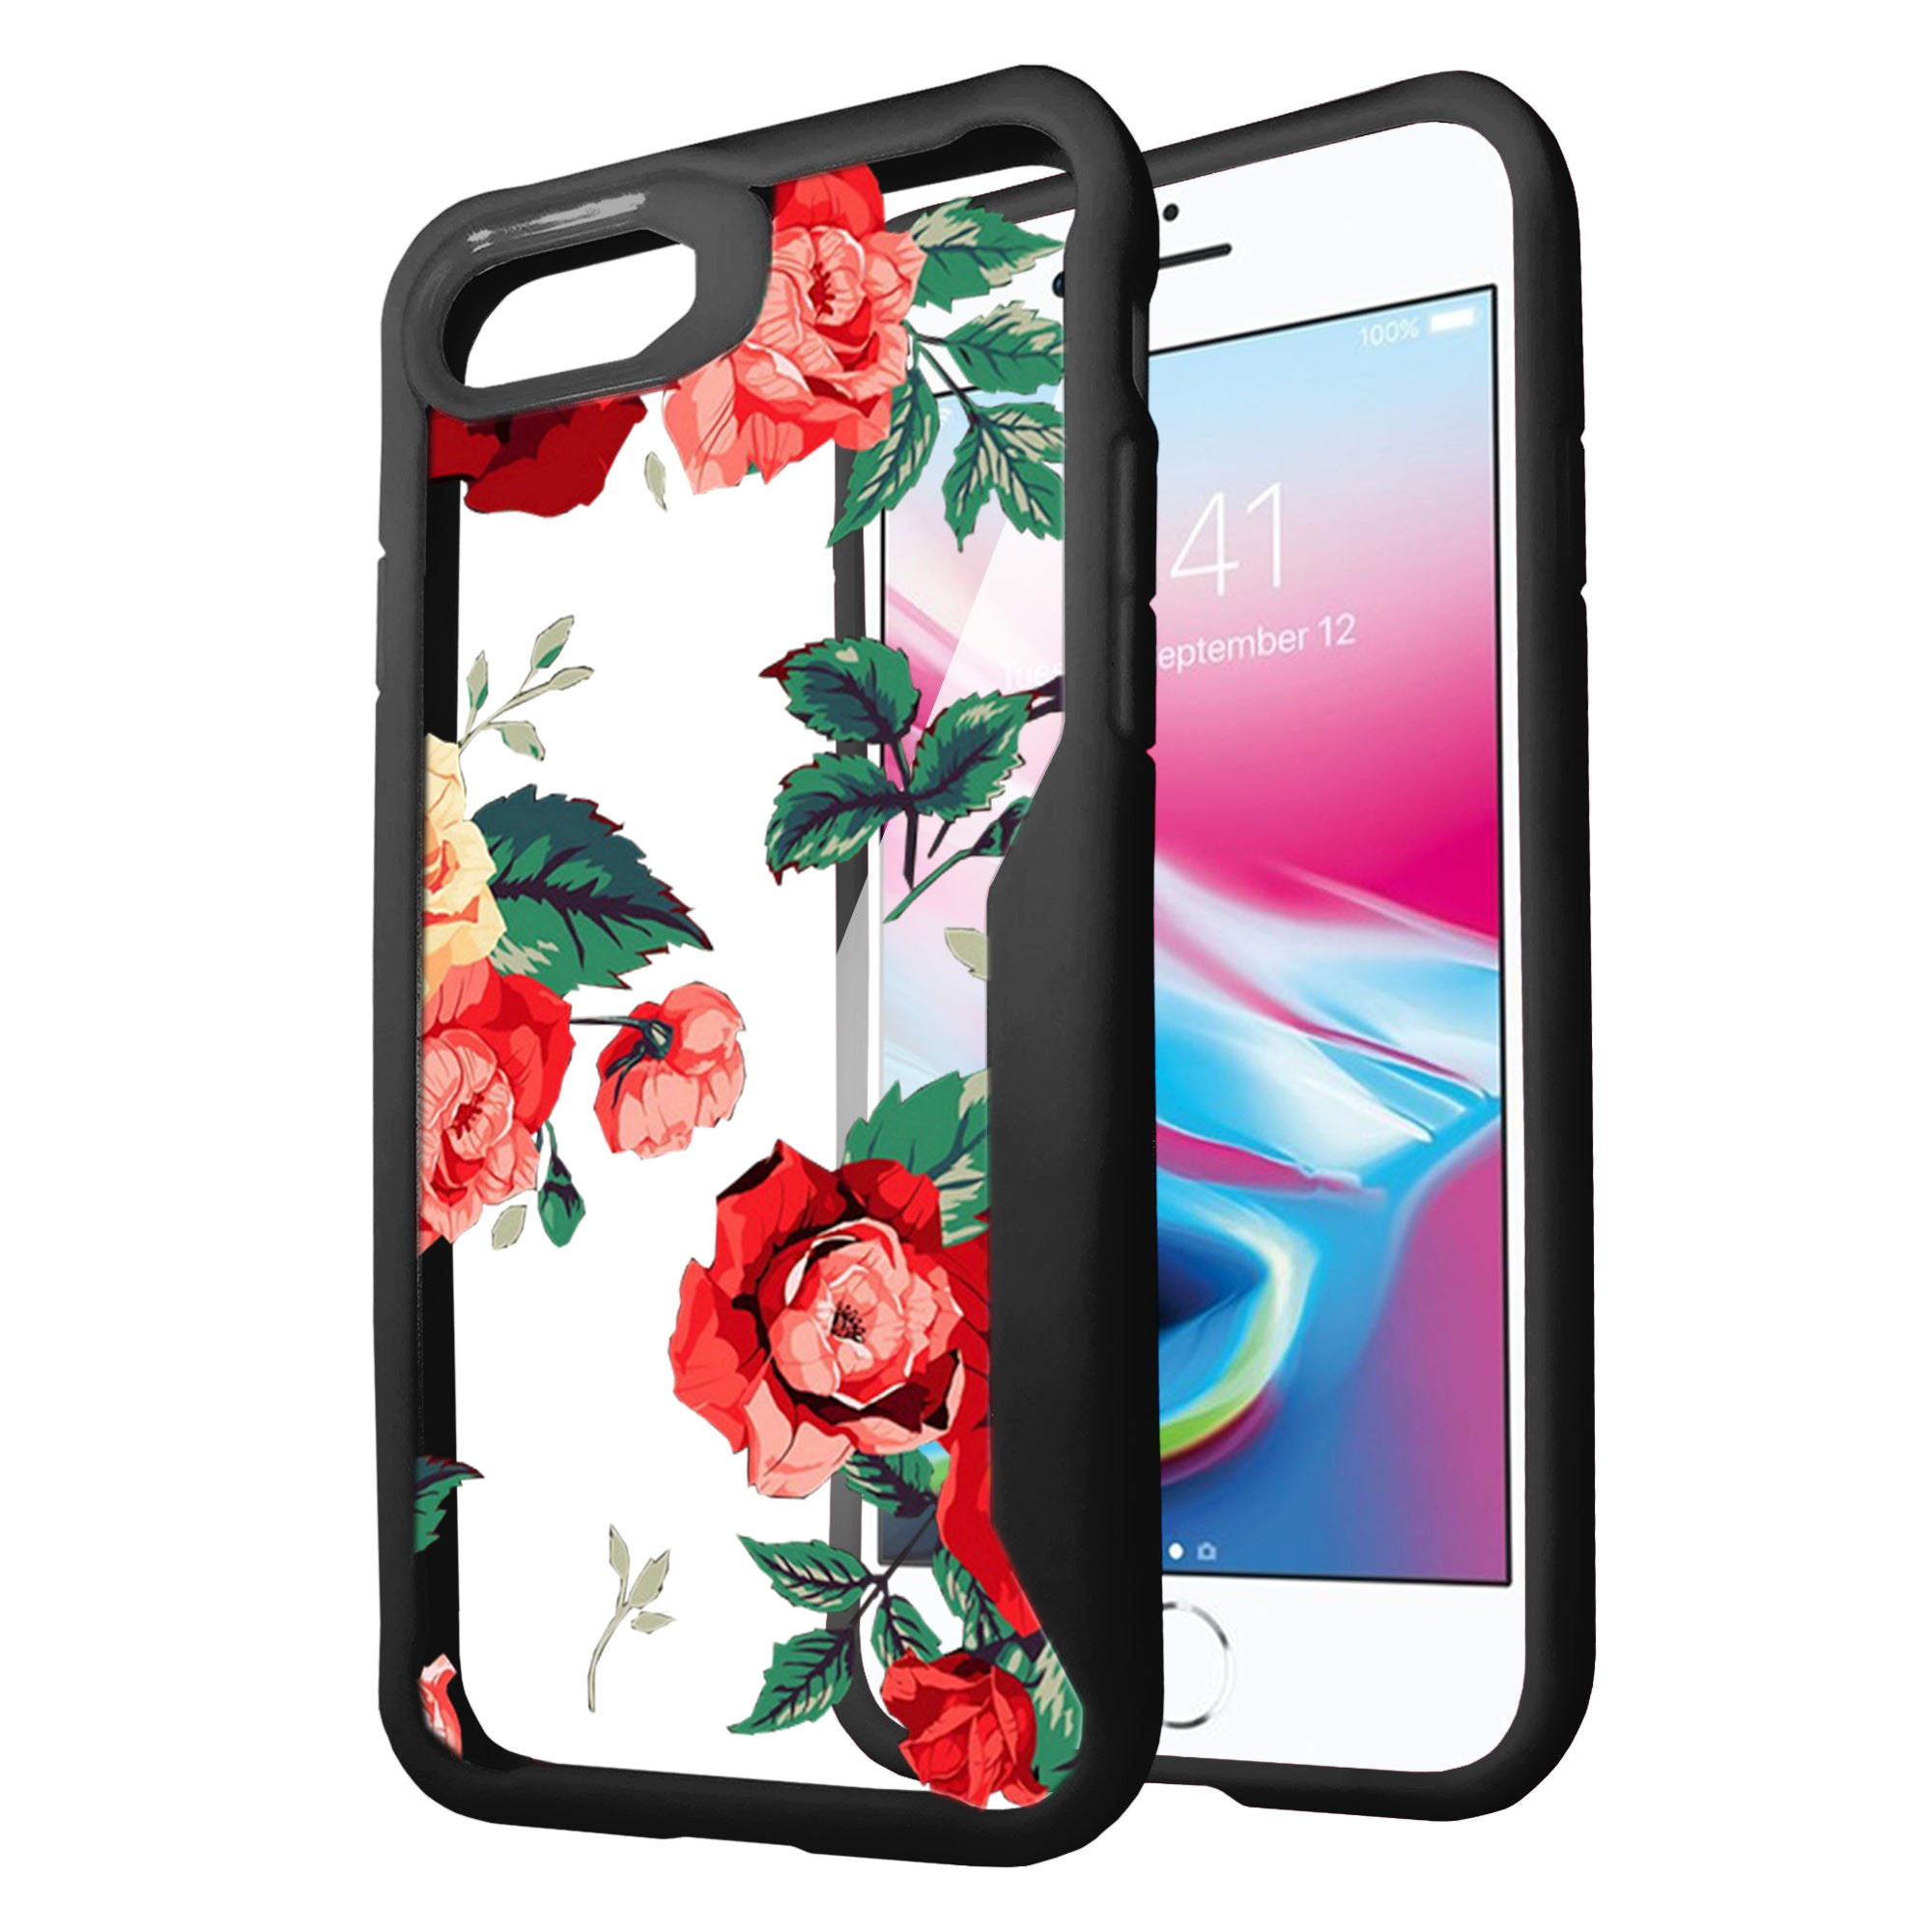 For-Apple-iPhone-7-iPhone-8-Clear-Case-w-Black-Silicone-Edges-Floral-Design thumbnail 21